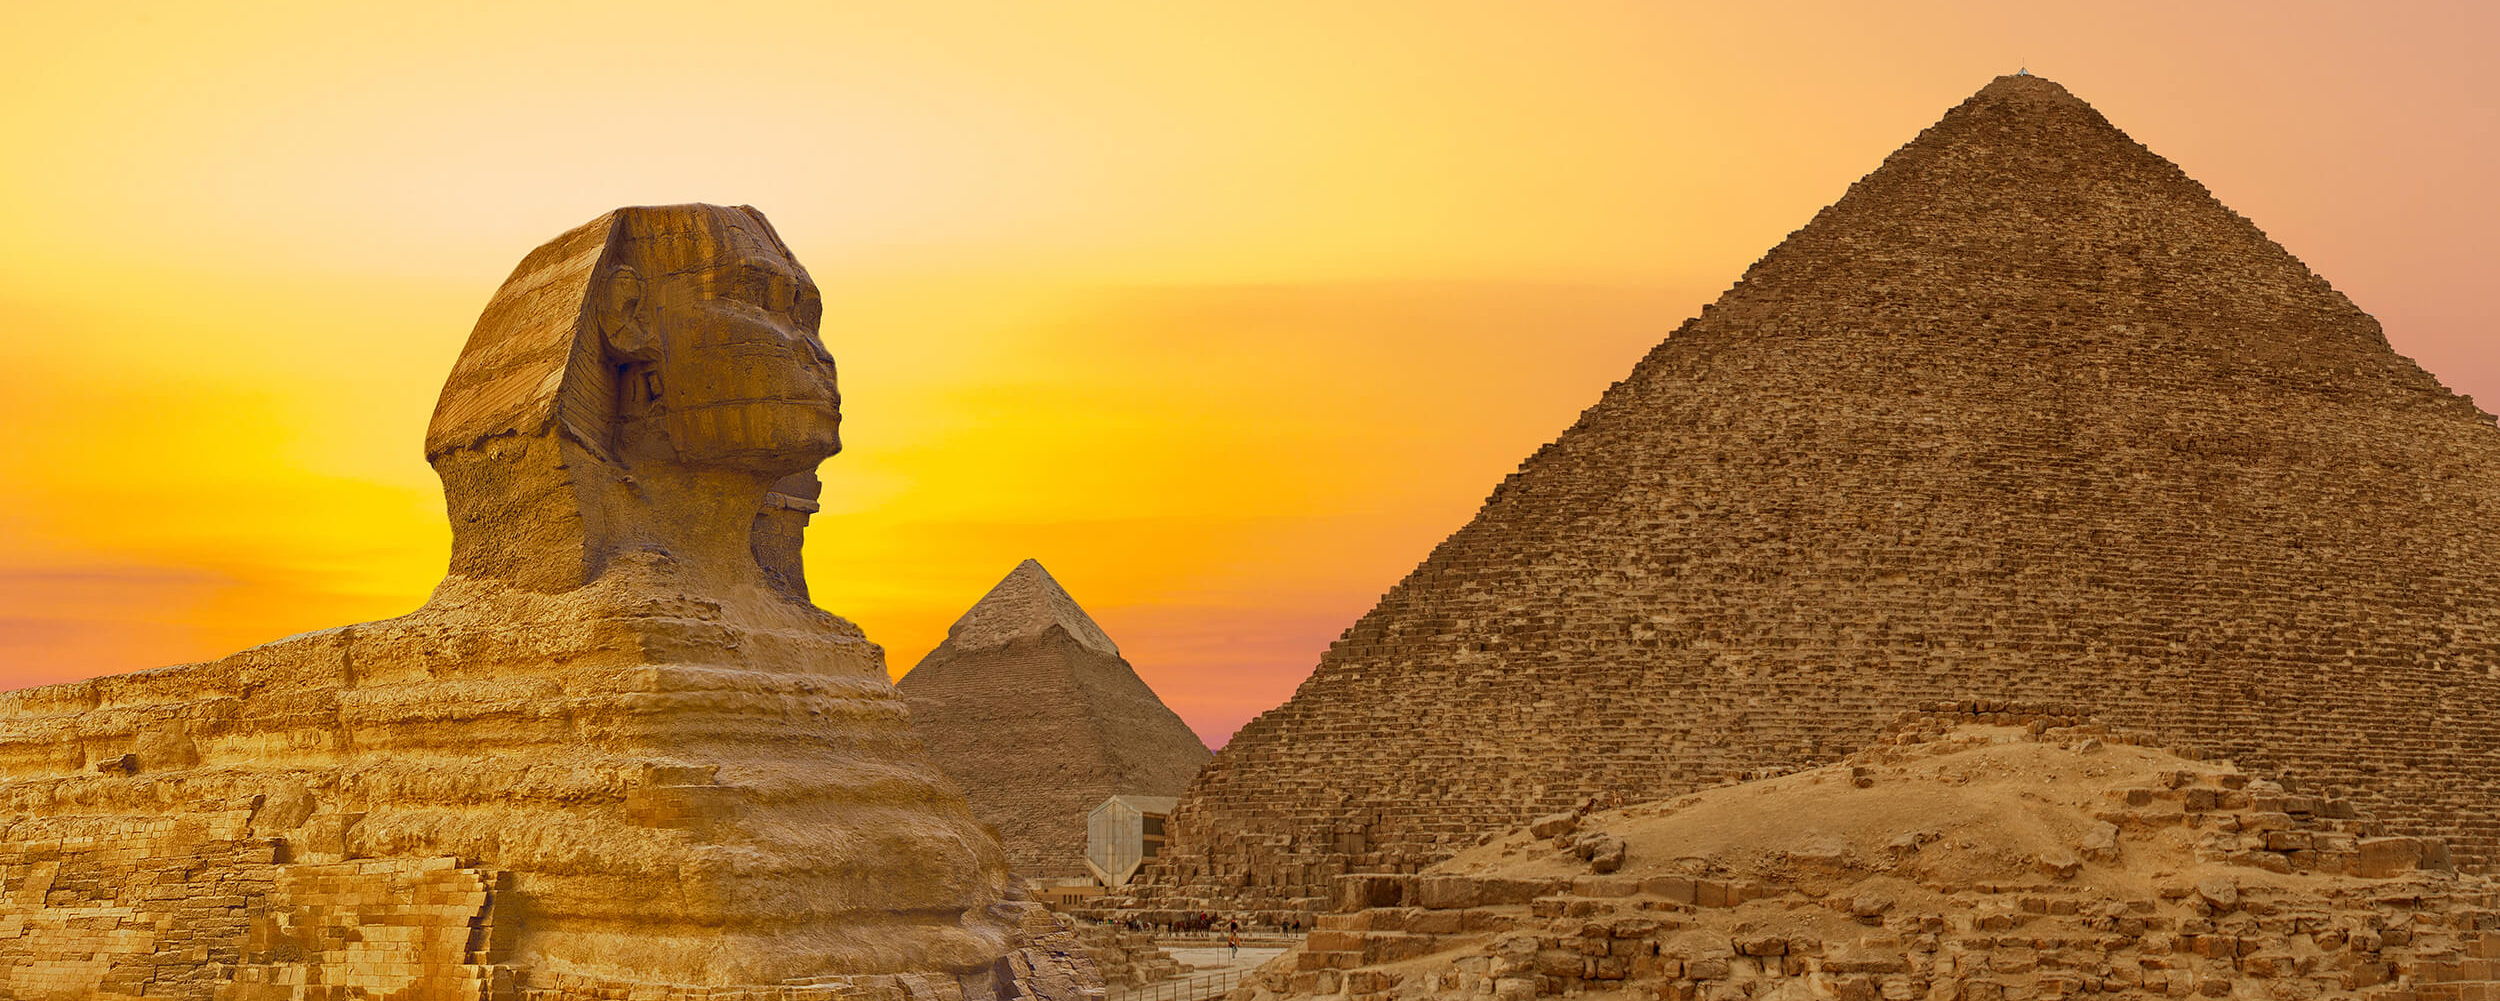 sphinx at sunset egypt